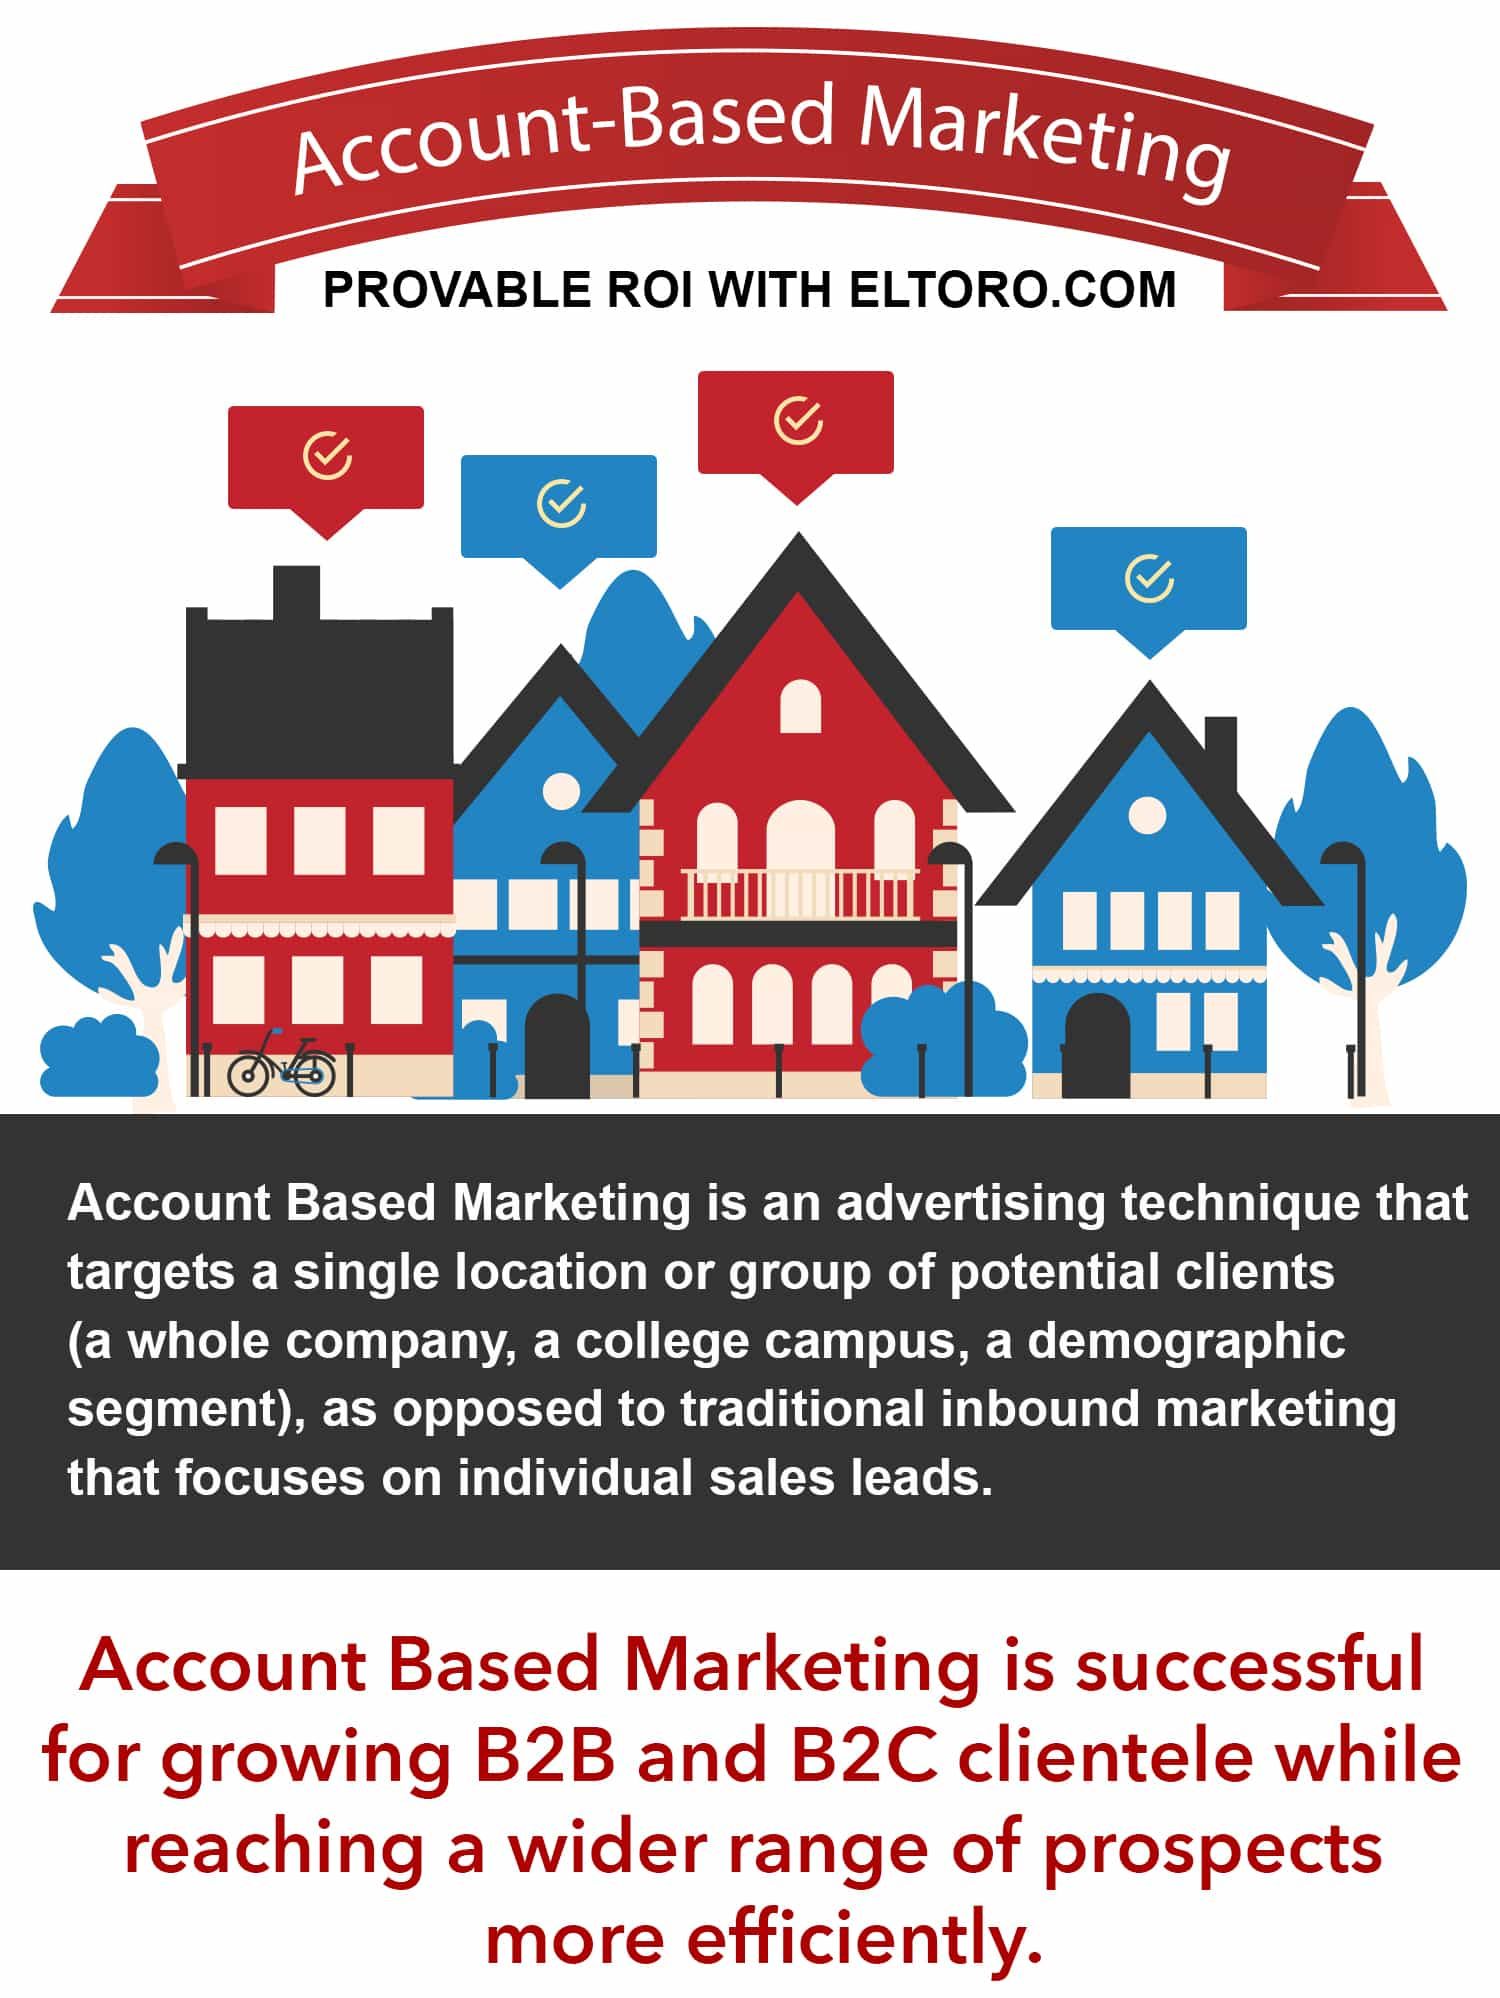 ElToro.com – Account Based Marketing